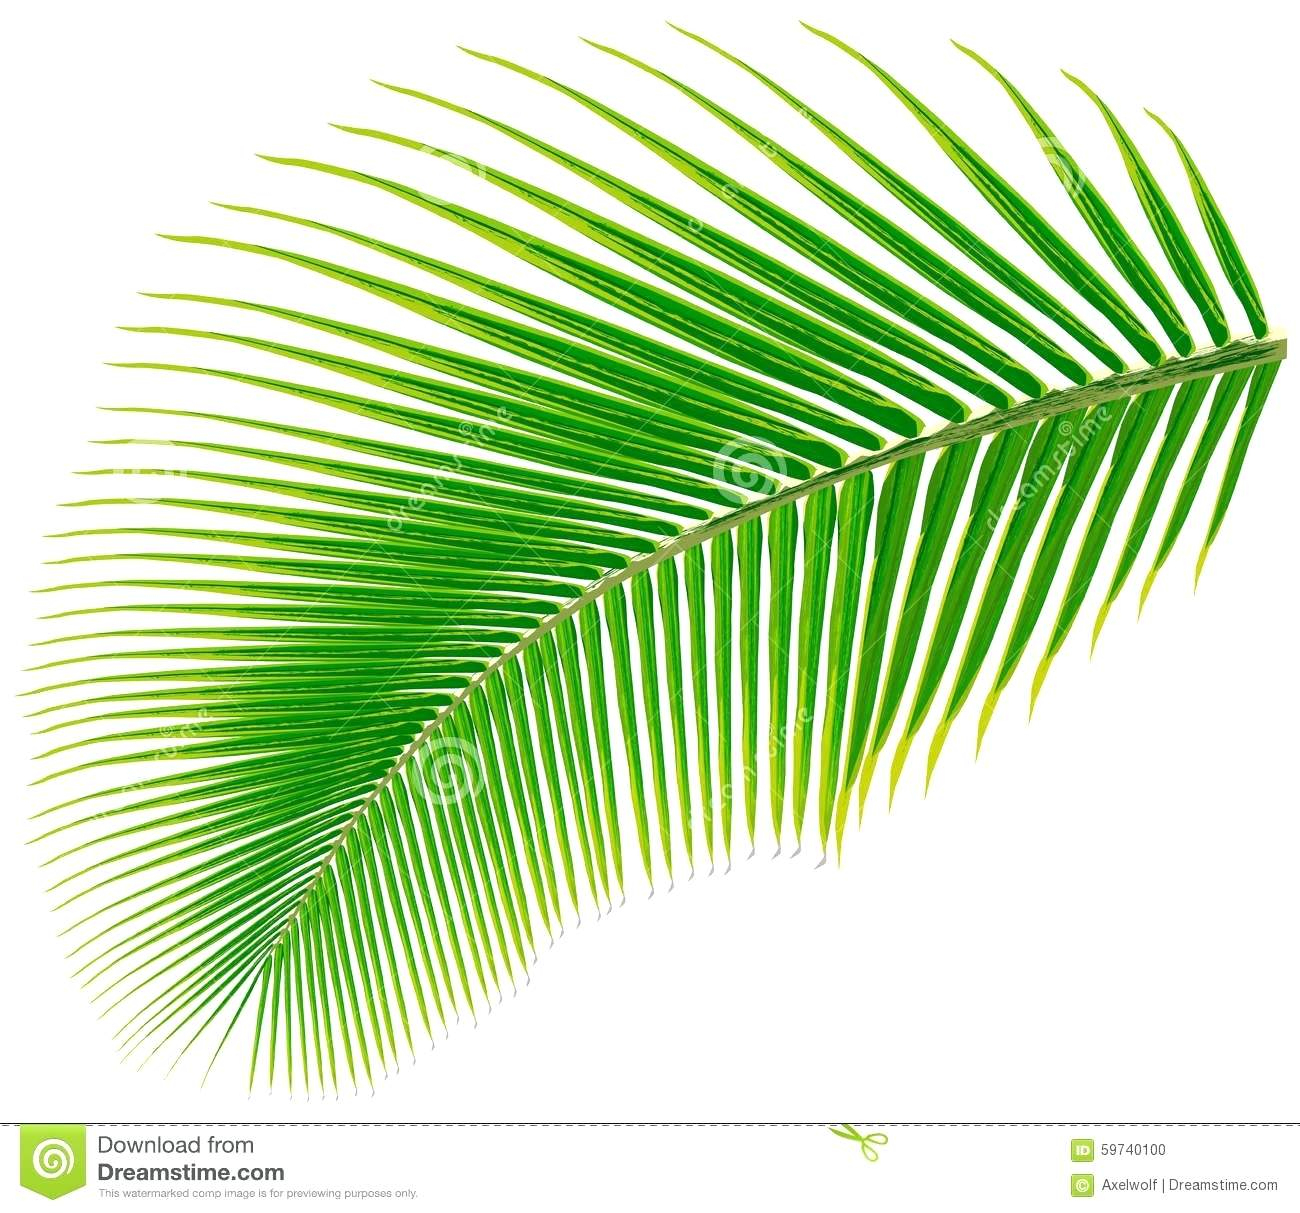 025 Palm Tree Leaves Template Leaf Vector Illustration Cut Out Ideas - Free Printable Palm Tree Template